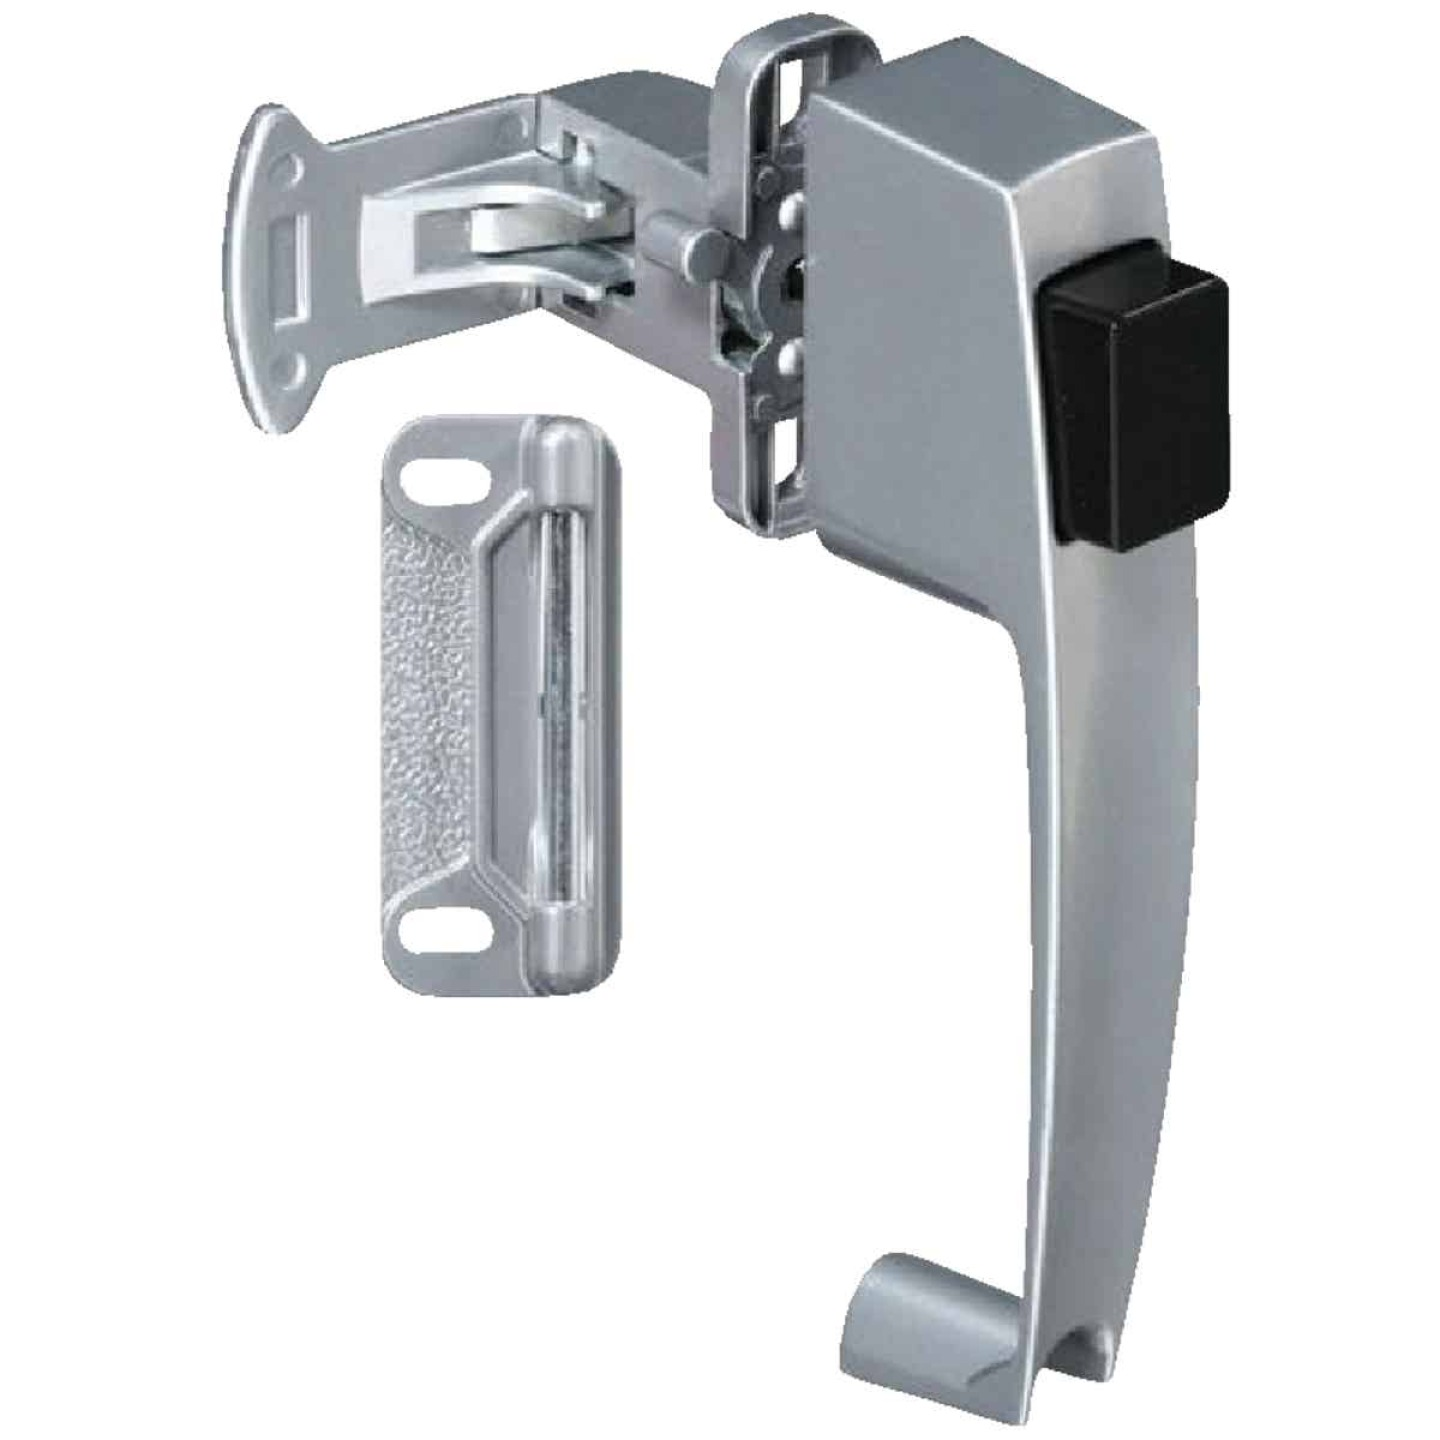 National Silver Push Button Latch with 1-1/2 In. Hole Spacing Image 1